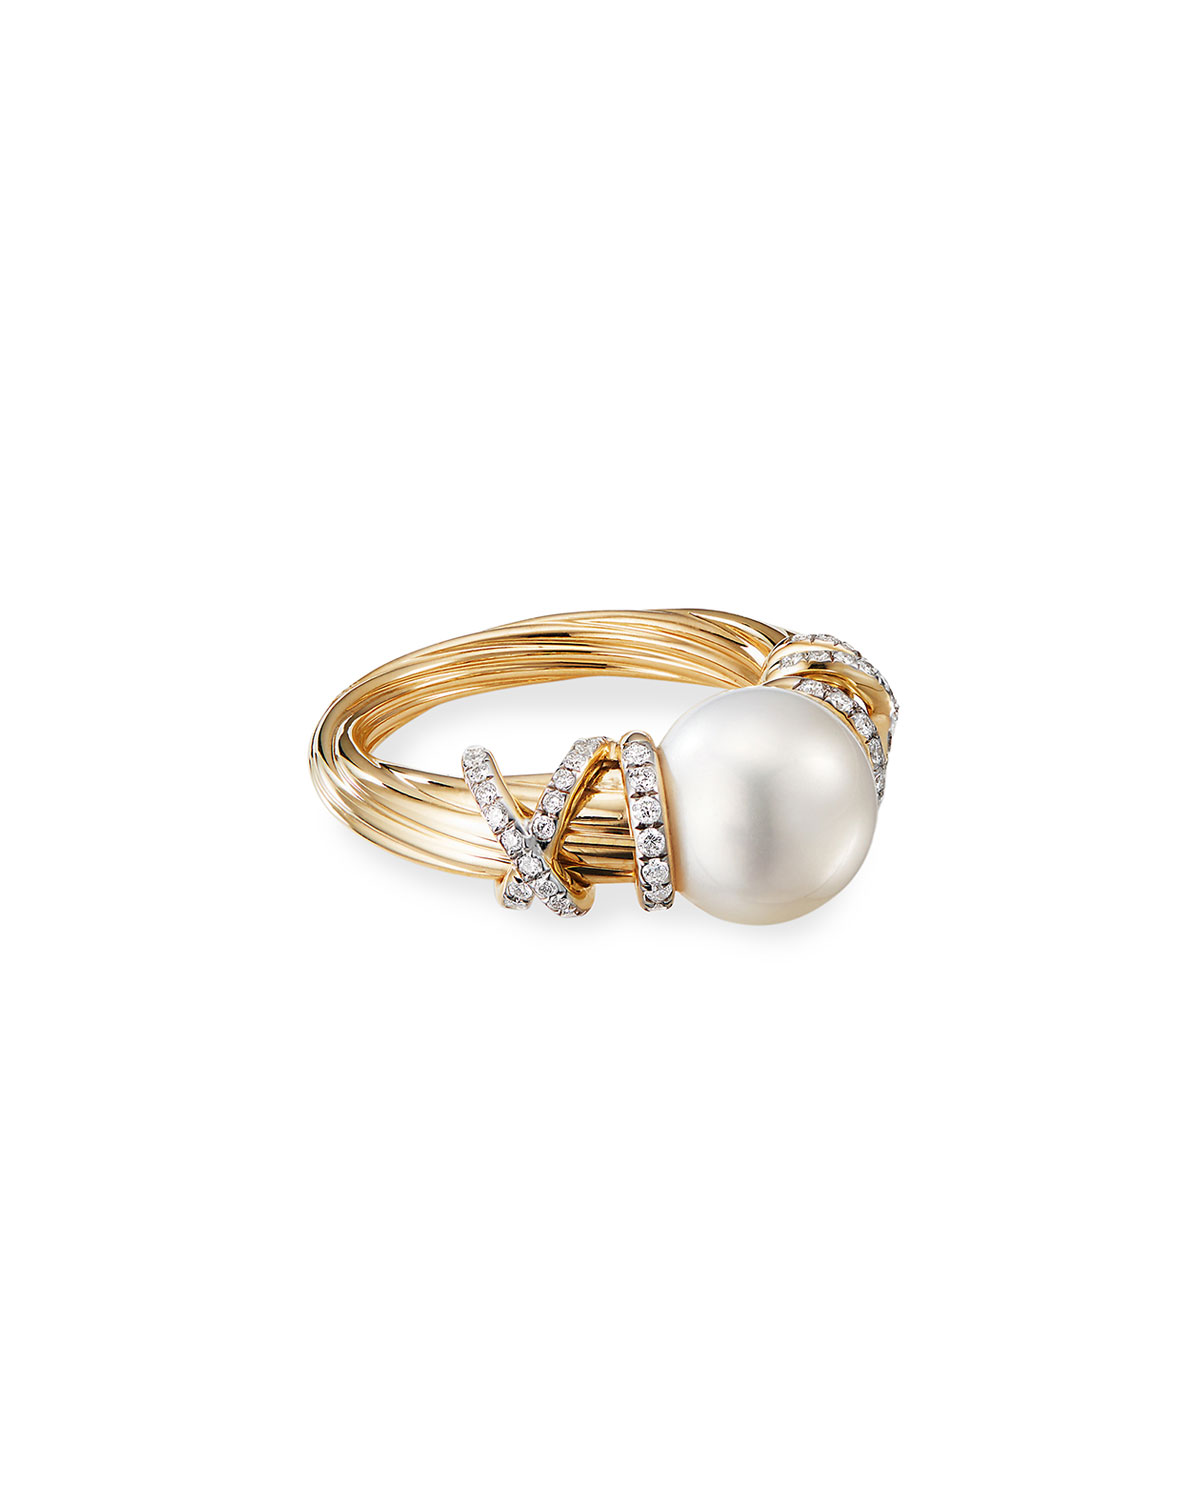 David Yurman Helena 18k Pearl & Diamond Ring, Size 9